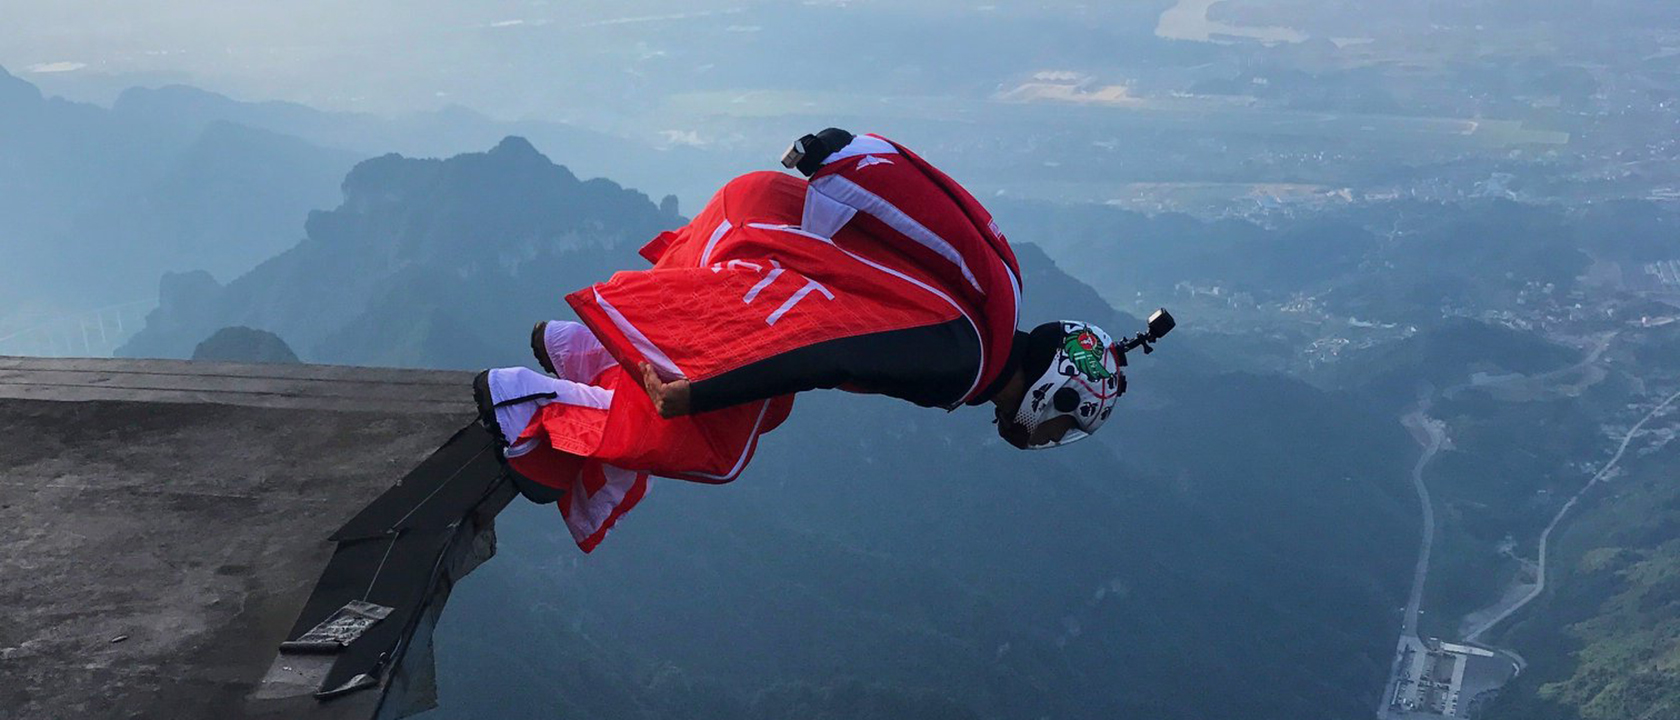 Wingsuit Exits Analysis